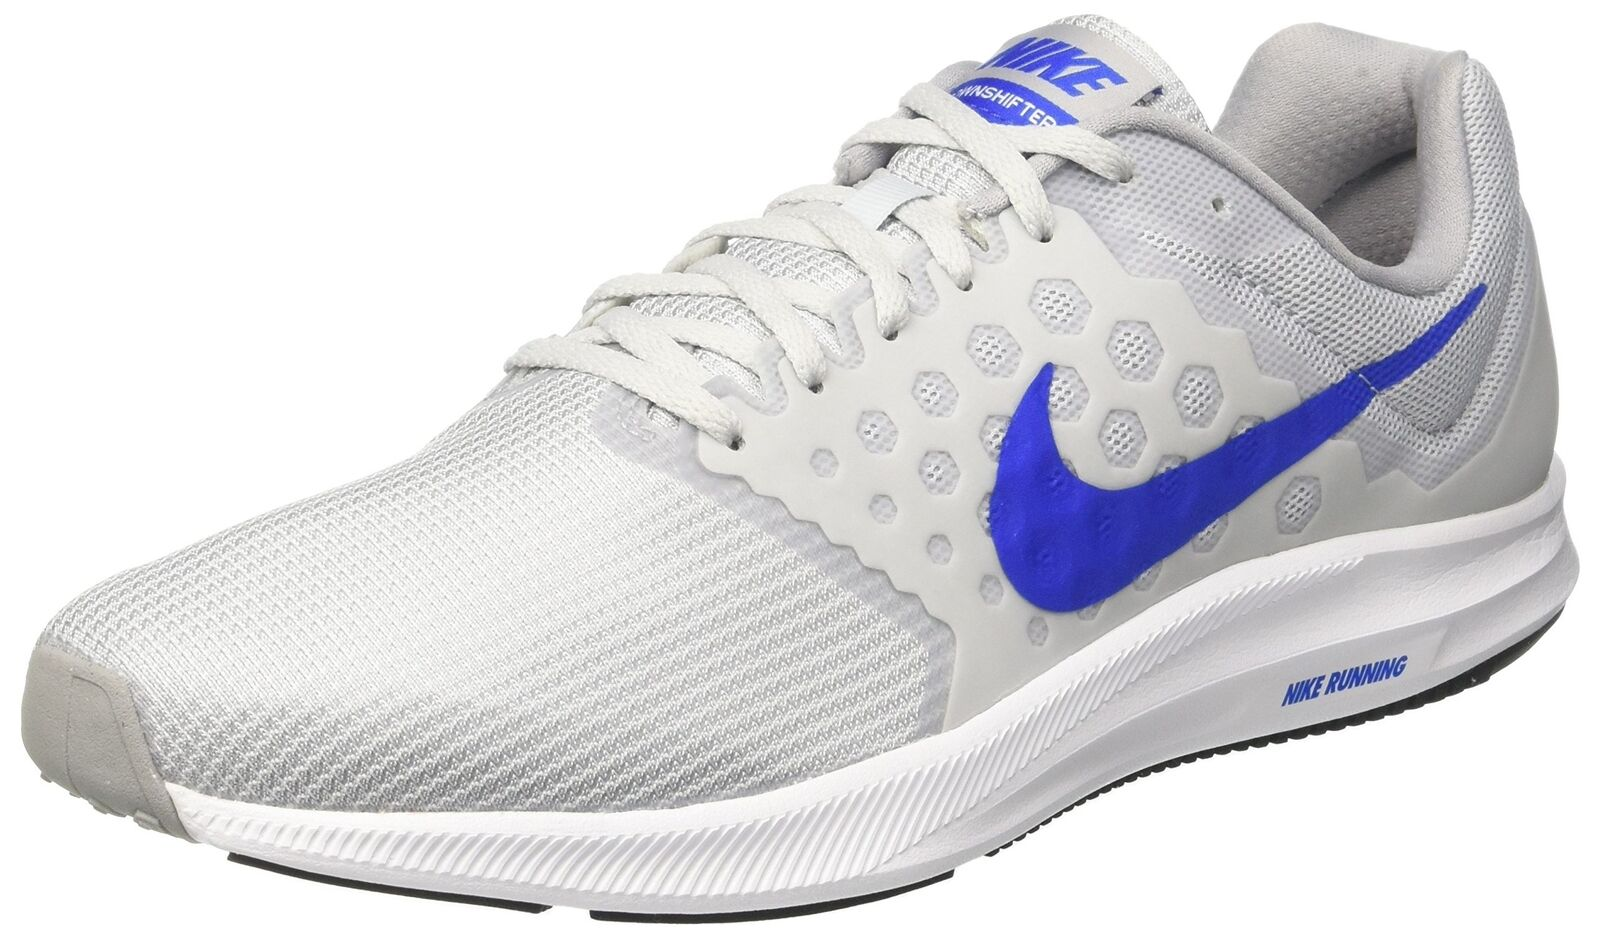 New! NIKE Men's Downshifter 7 Running Shoe Comfortable The latest discount shoes for men and women